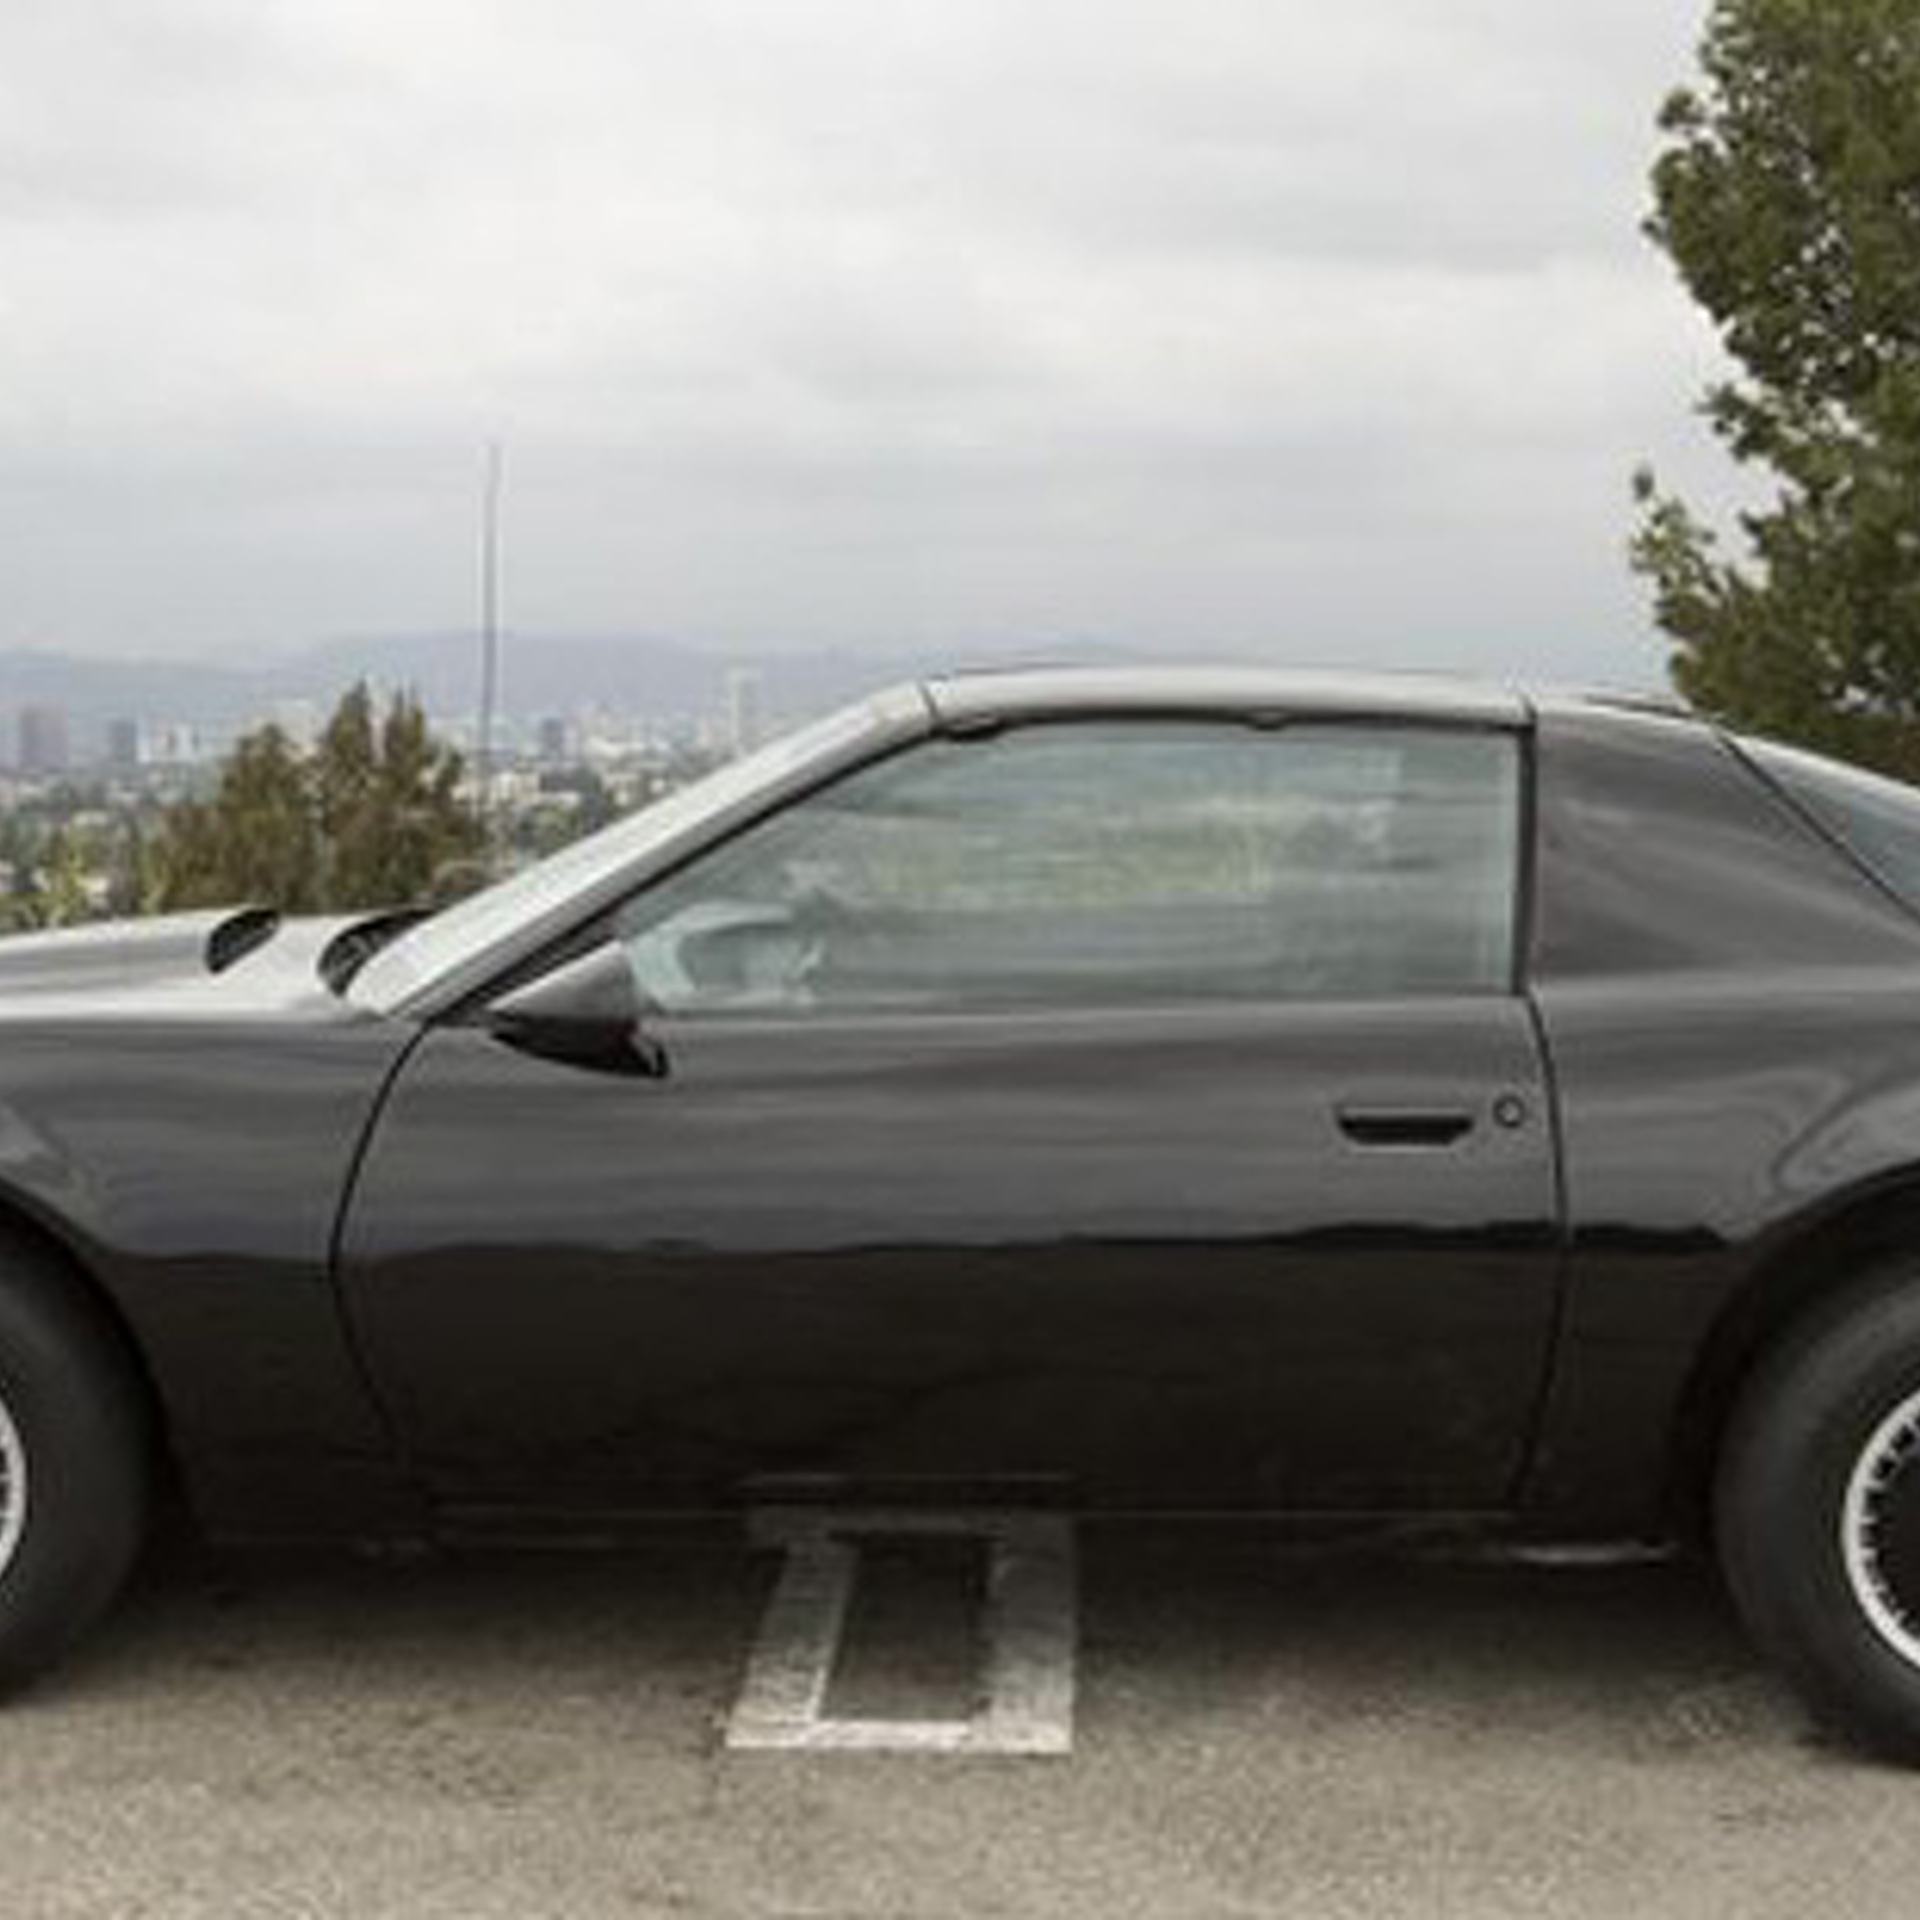 Buy This Set-Used 'Knight Rider' Trans Am and Be Just Like David